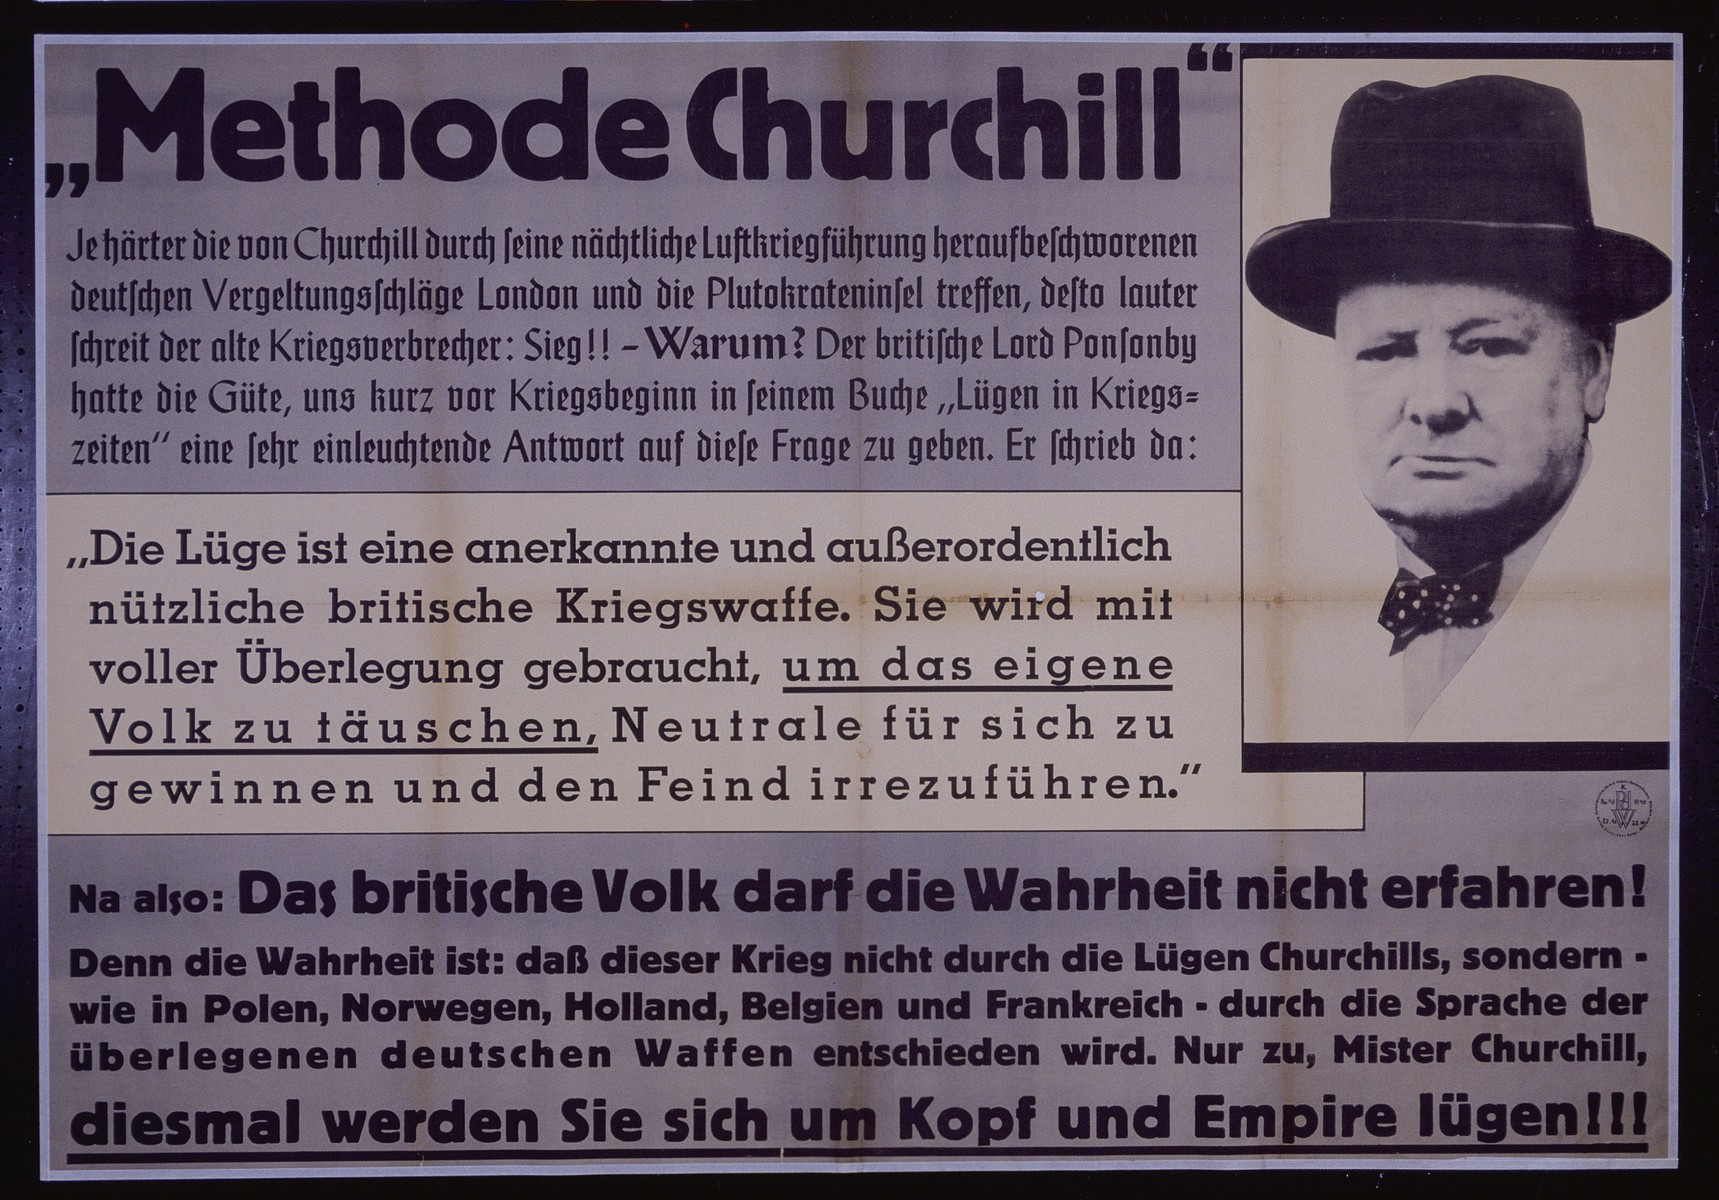 """Nazi propaganda poster entitled, """"Methode Churchill,"""" issued by the """"Parole der Woche,"""" a wall newspaper (Wandzeitung) published by the National Socialist Party propaganda office in Munich."""